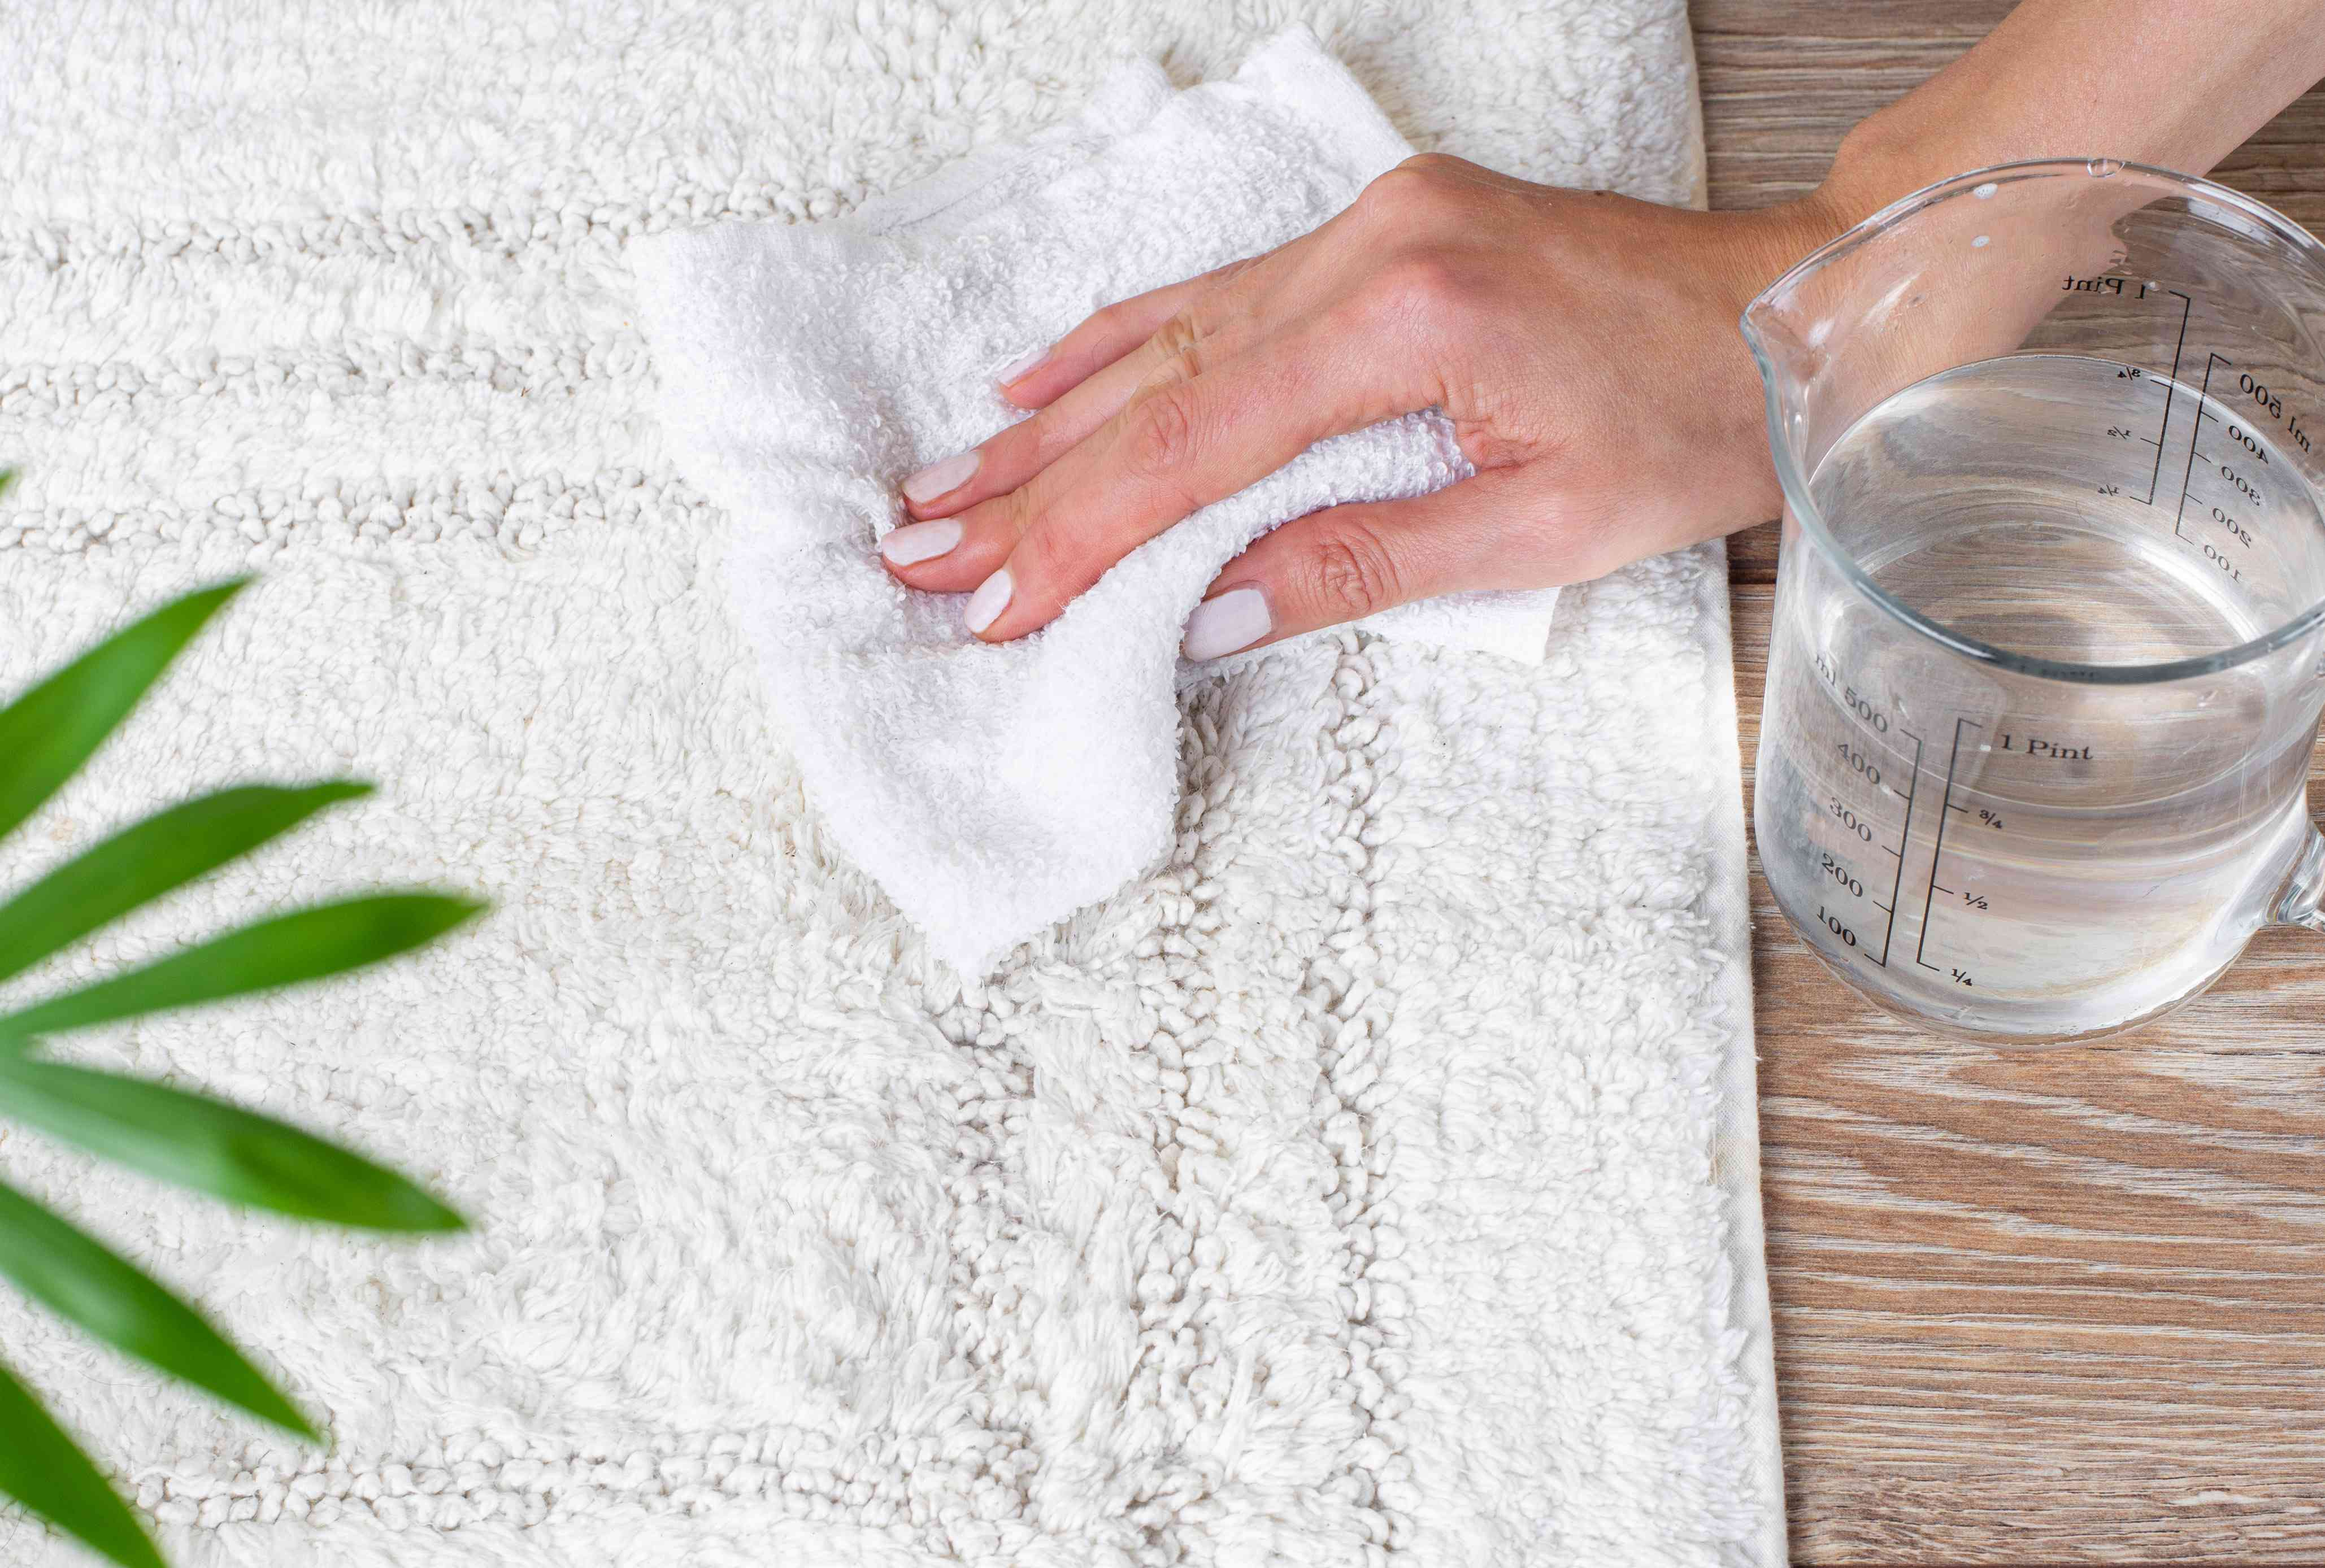 blotting the stain with a white cloth